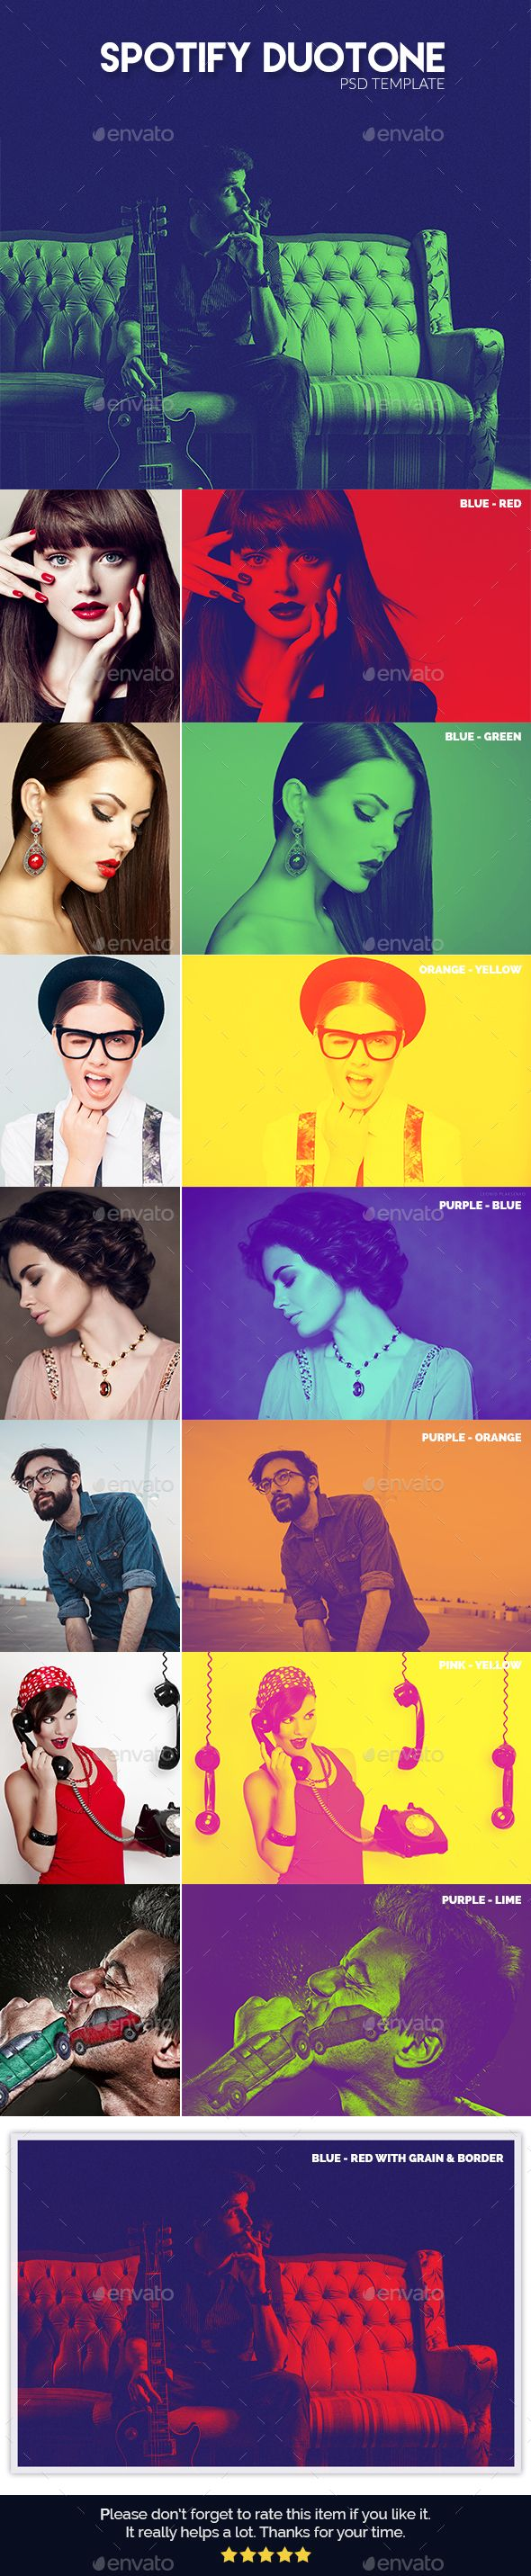 Spotify Duotone Template — Photoshop PSD #retouch #adjustment • Available here → https://graphicriver.net/item/spotify-duotone-template/19892917?ref=pxcr